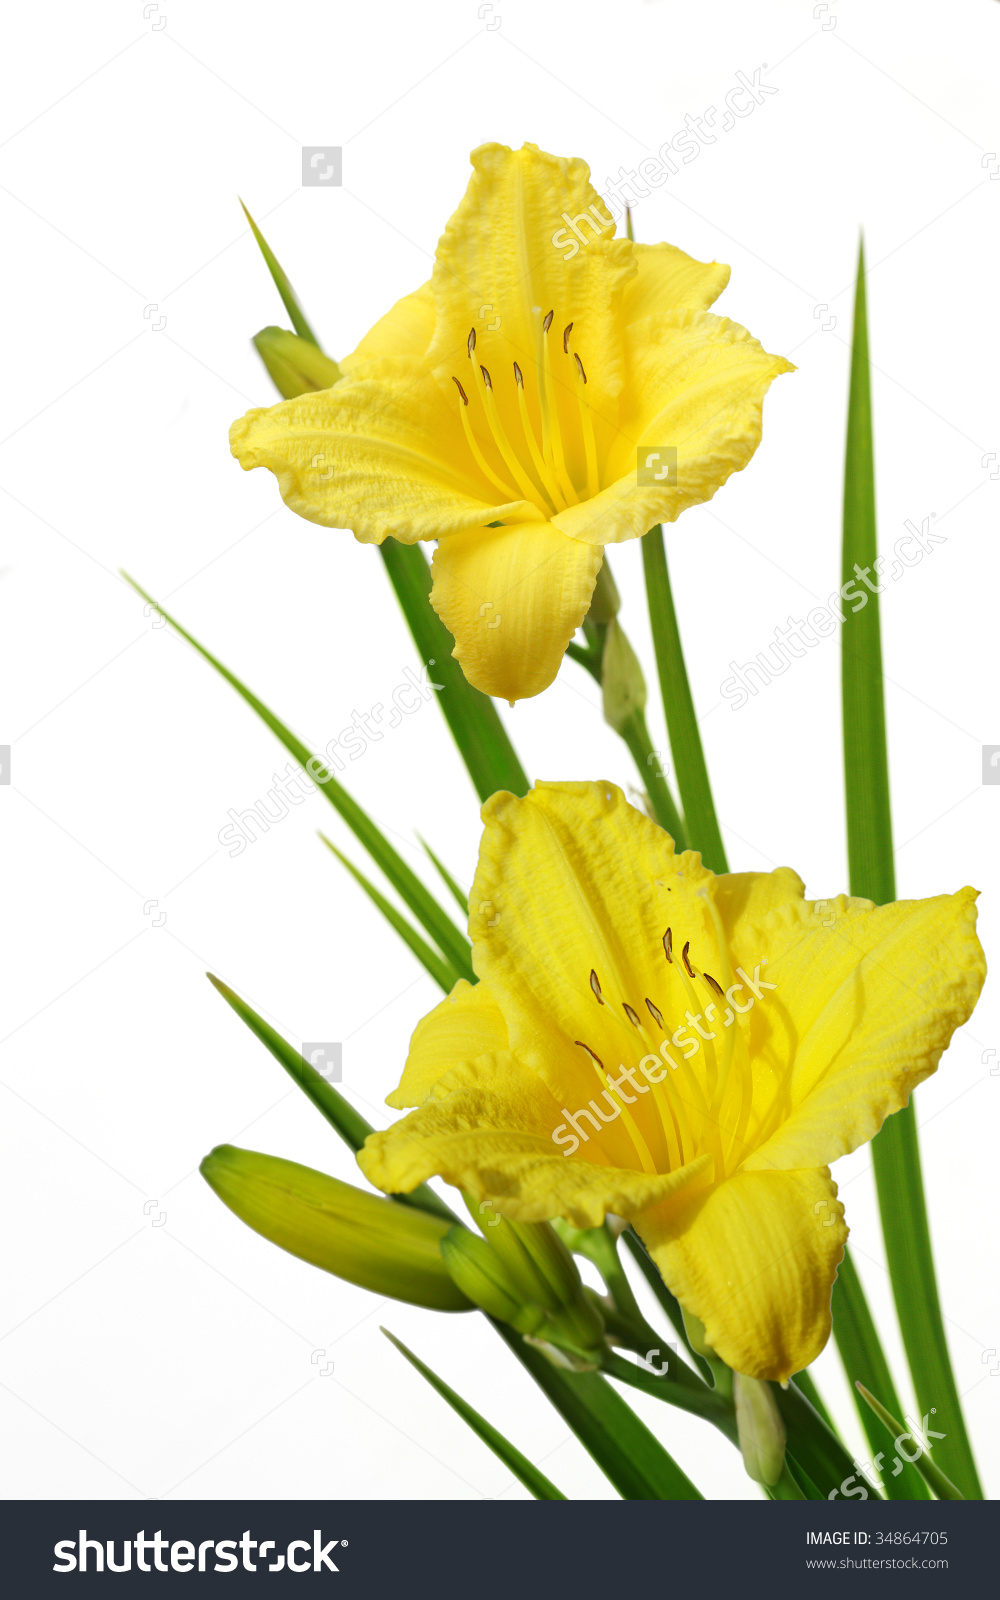 Bundle Of Yellow Daylily Flower Isolated On White Stock Photo.